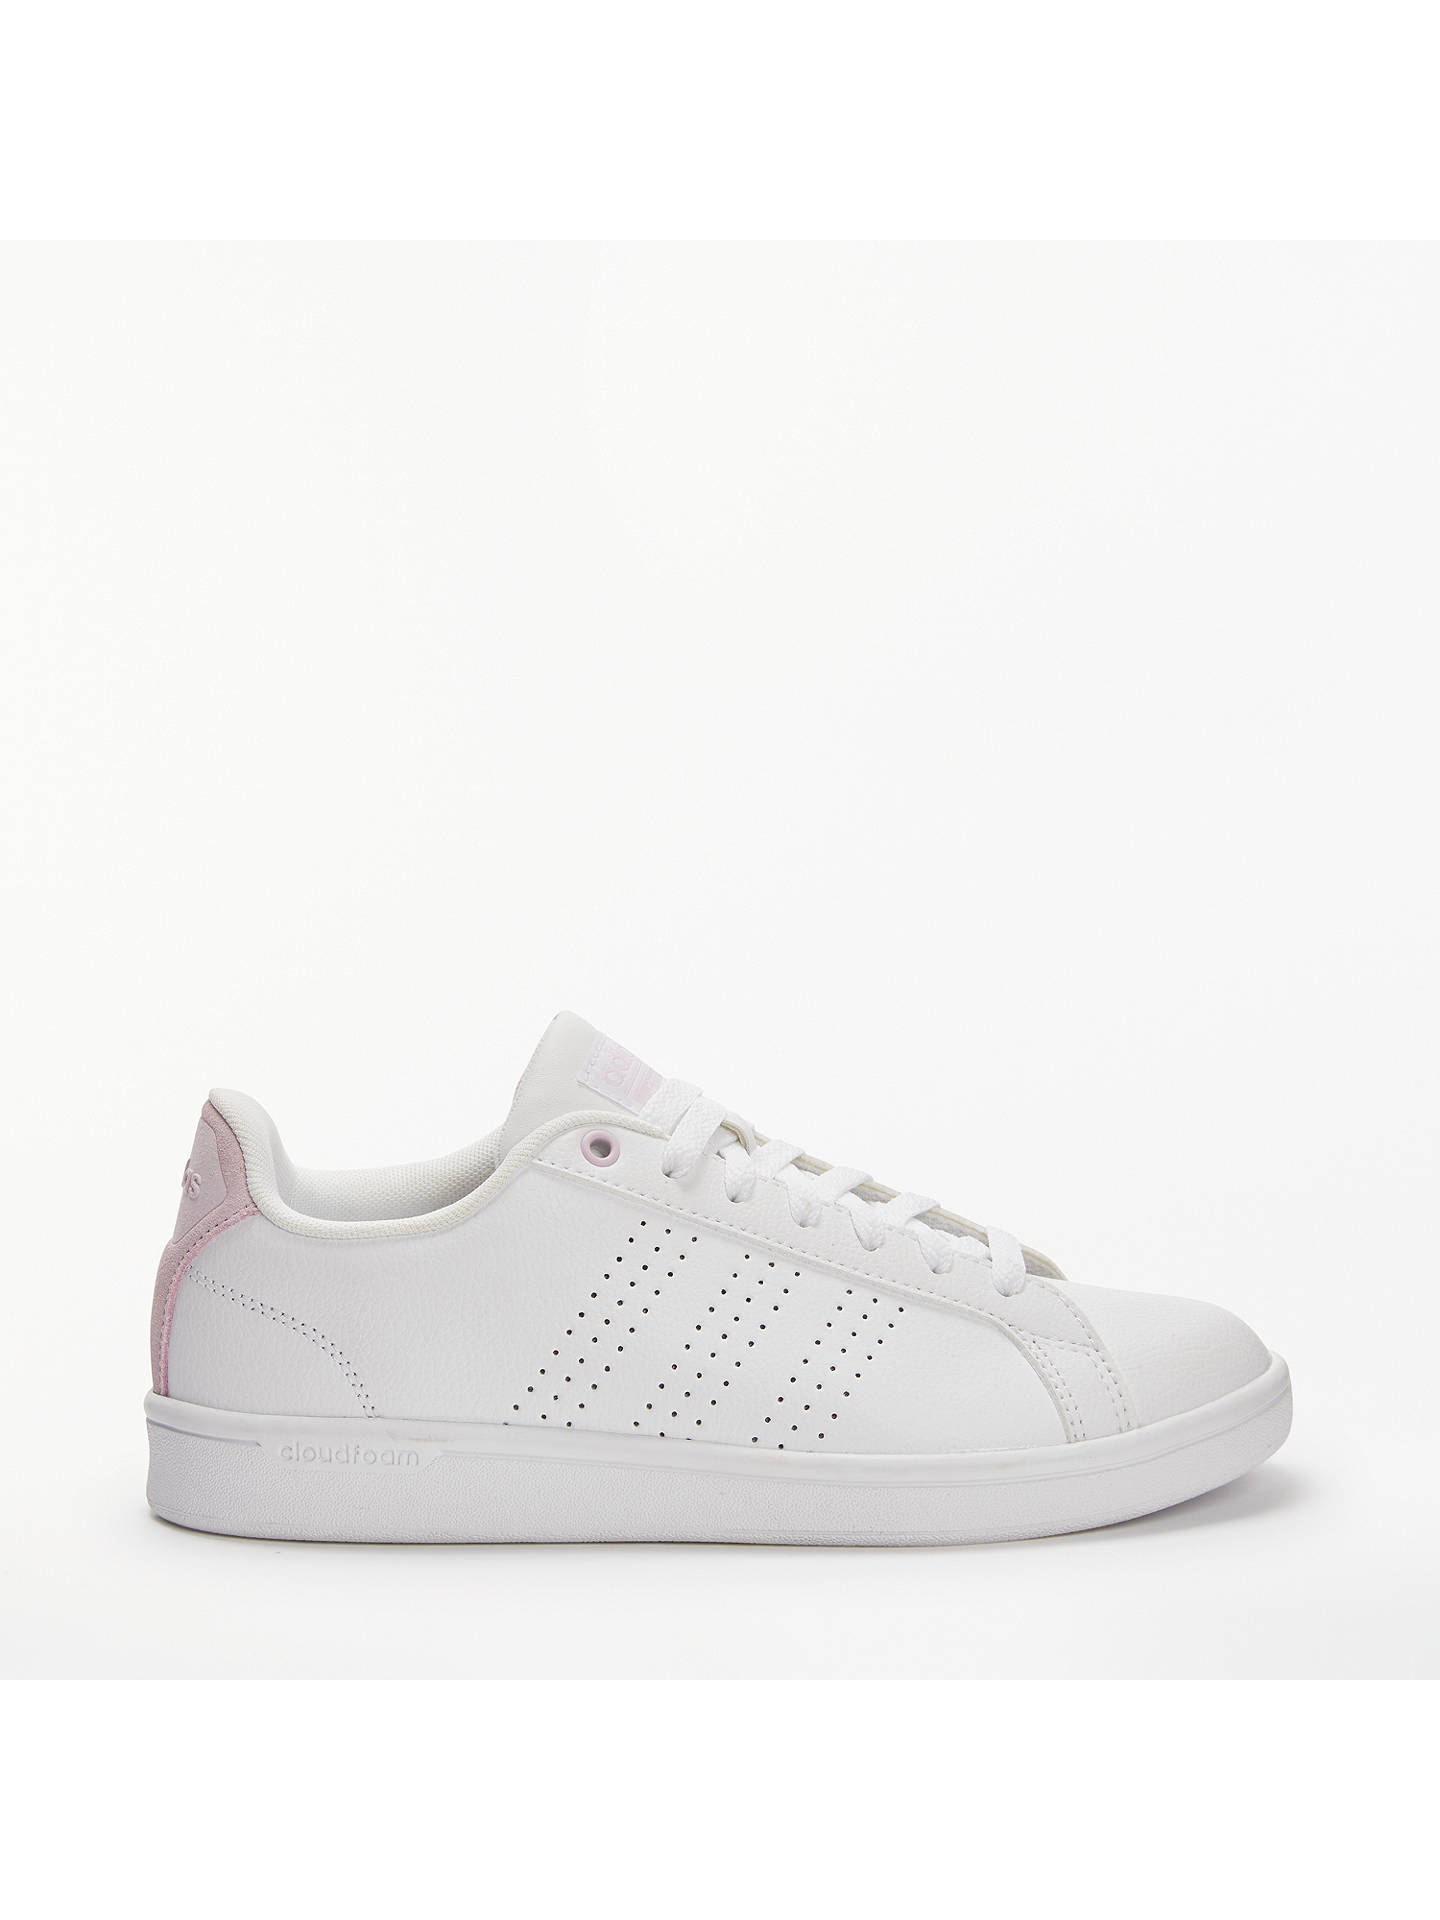 2802adb4fff7 Buy adidas Neo Cloudfoam Advantage Women s Trainers